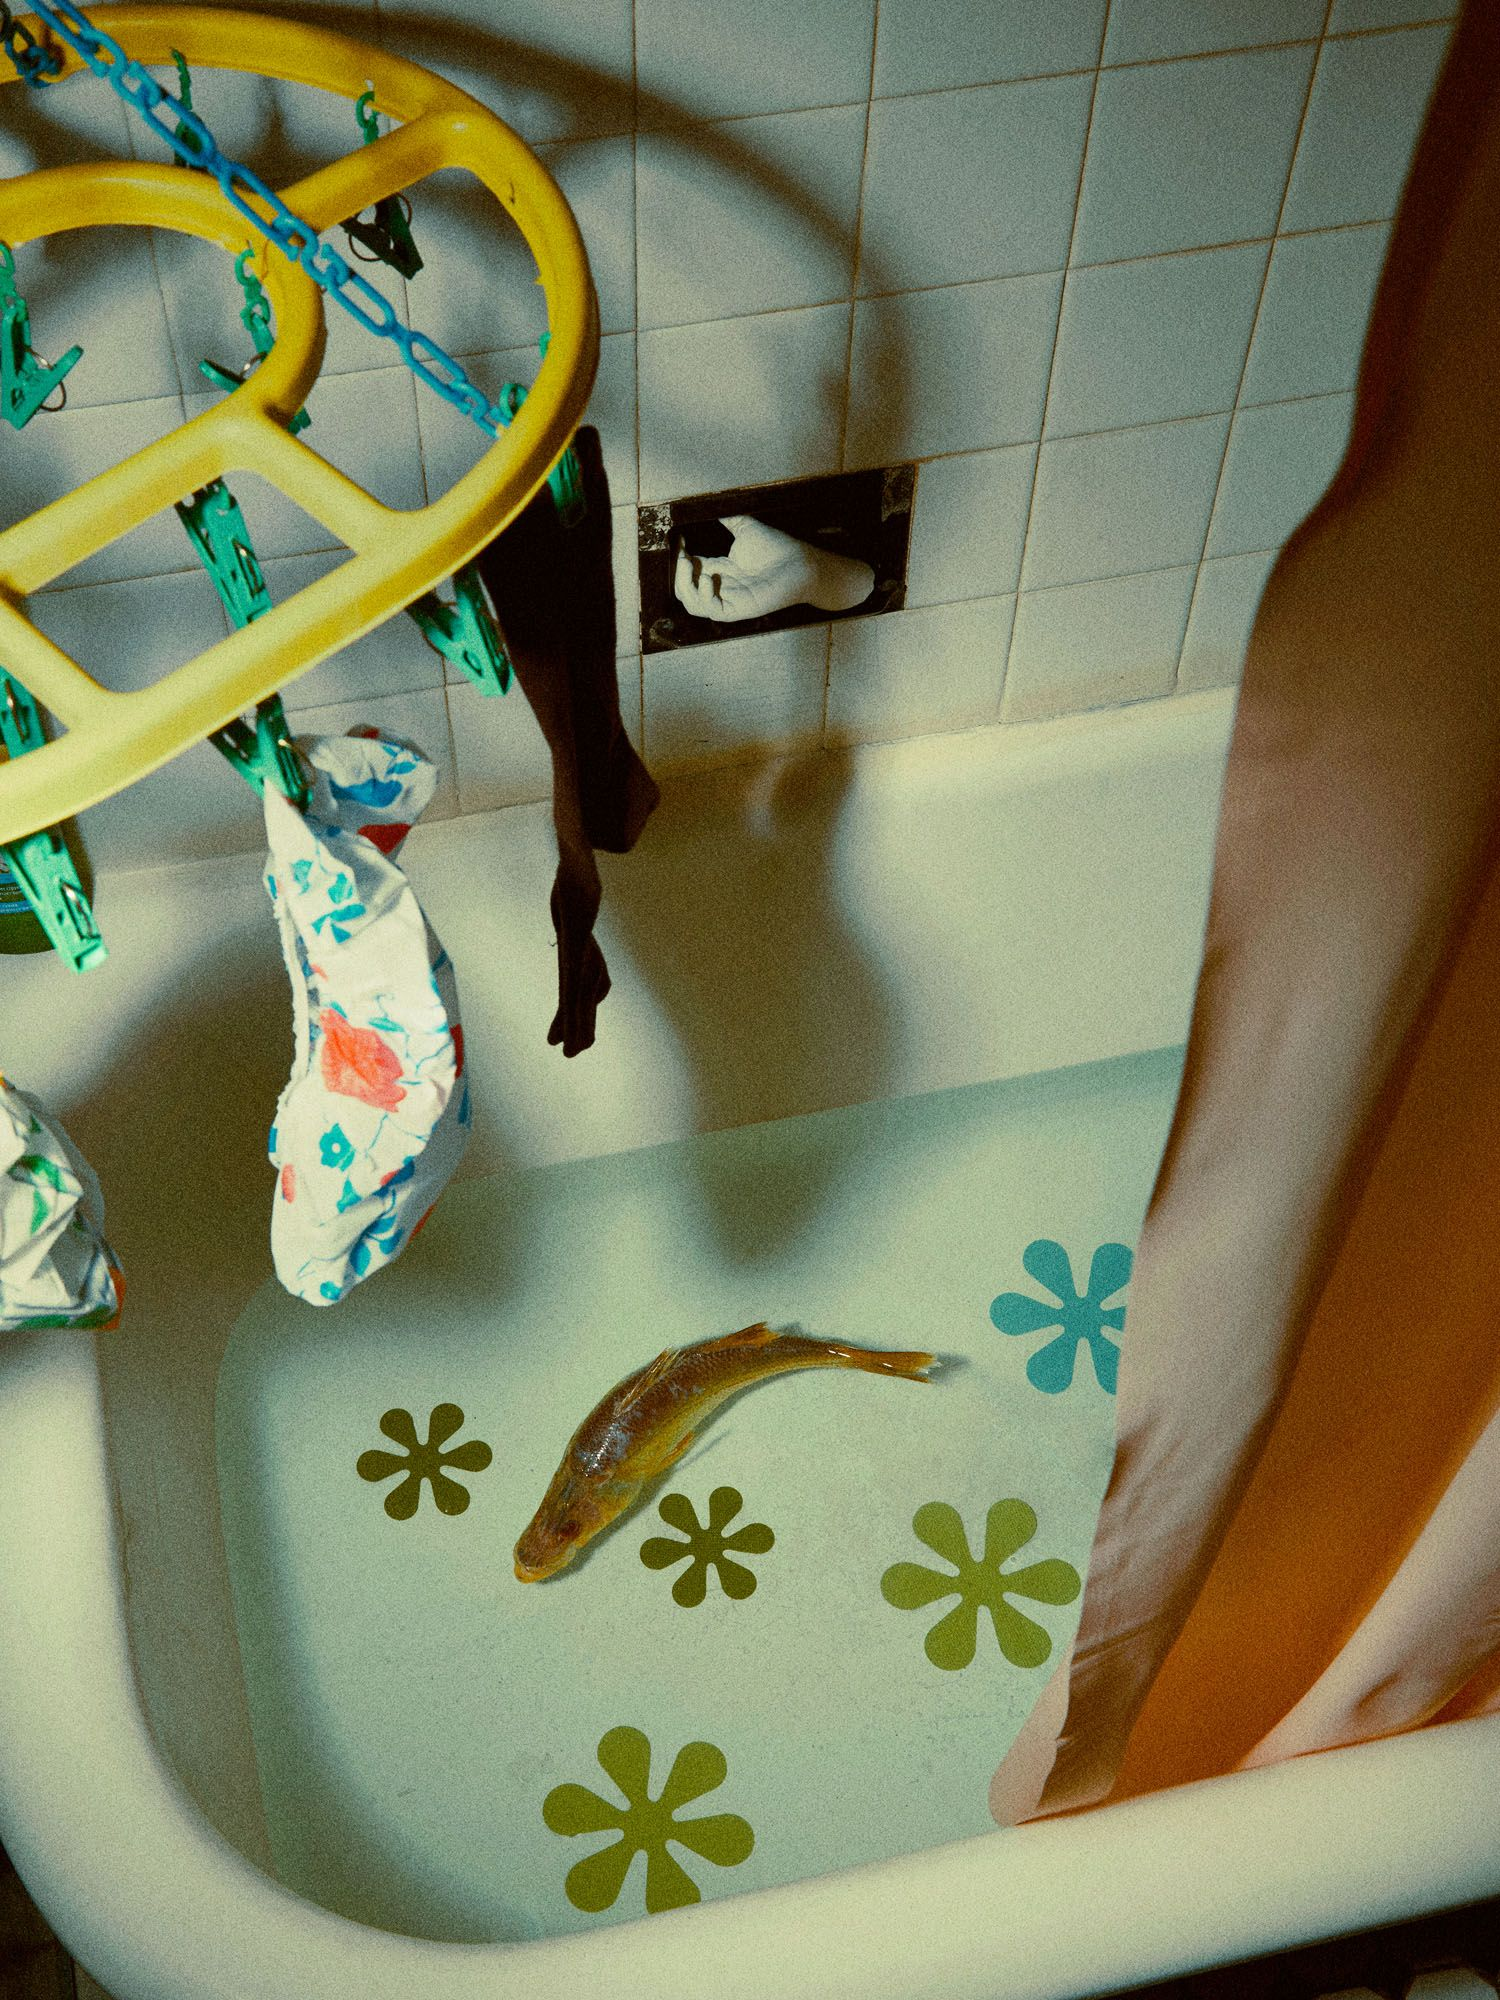 """""""If you want to take a bath, do it today; I'm bringing the carp tomorrow and it lives in the tub till Easter,' said Natalia helpfully. WAIT. Easter is three months away."""""""